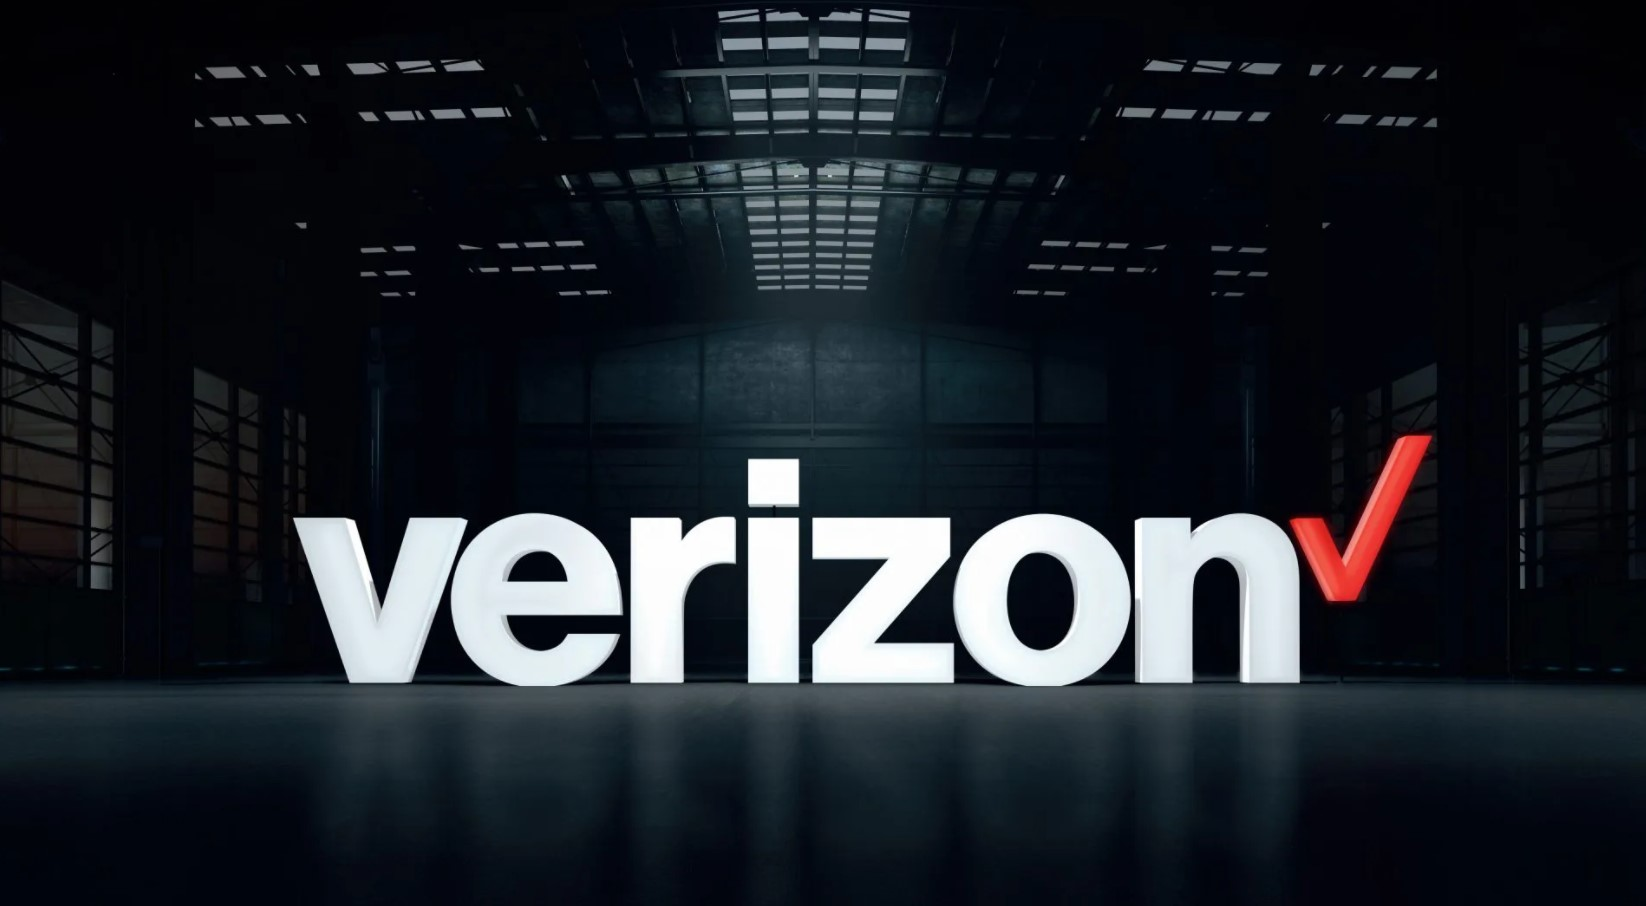 How can I read text messages from another phone on my Verizon account